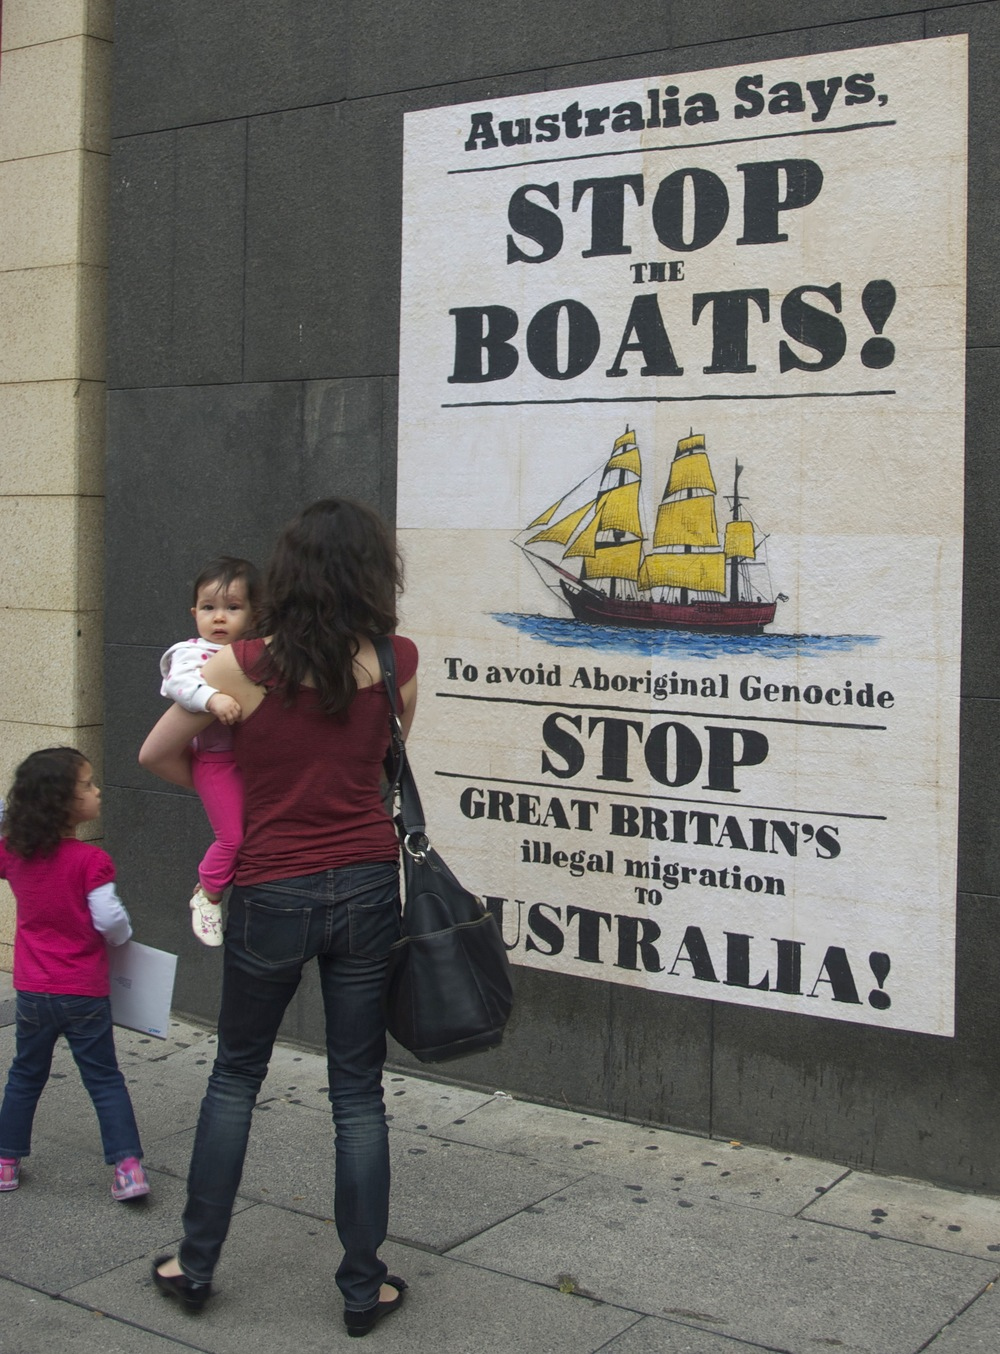 Peter-Drew-arts-stop-the-boats.jpg